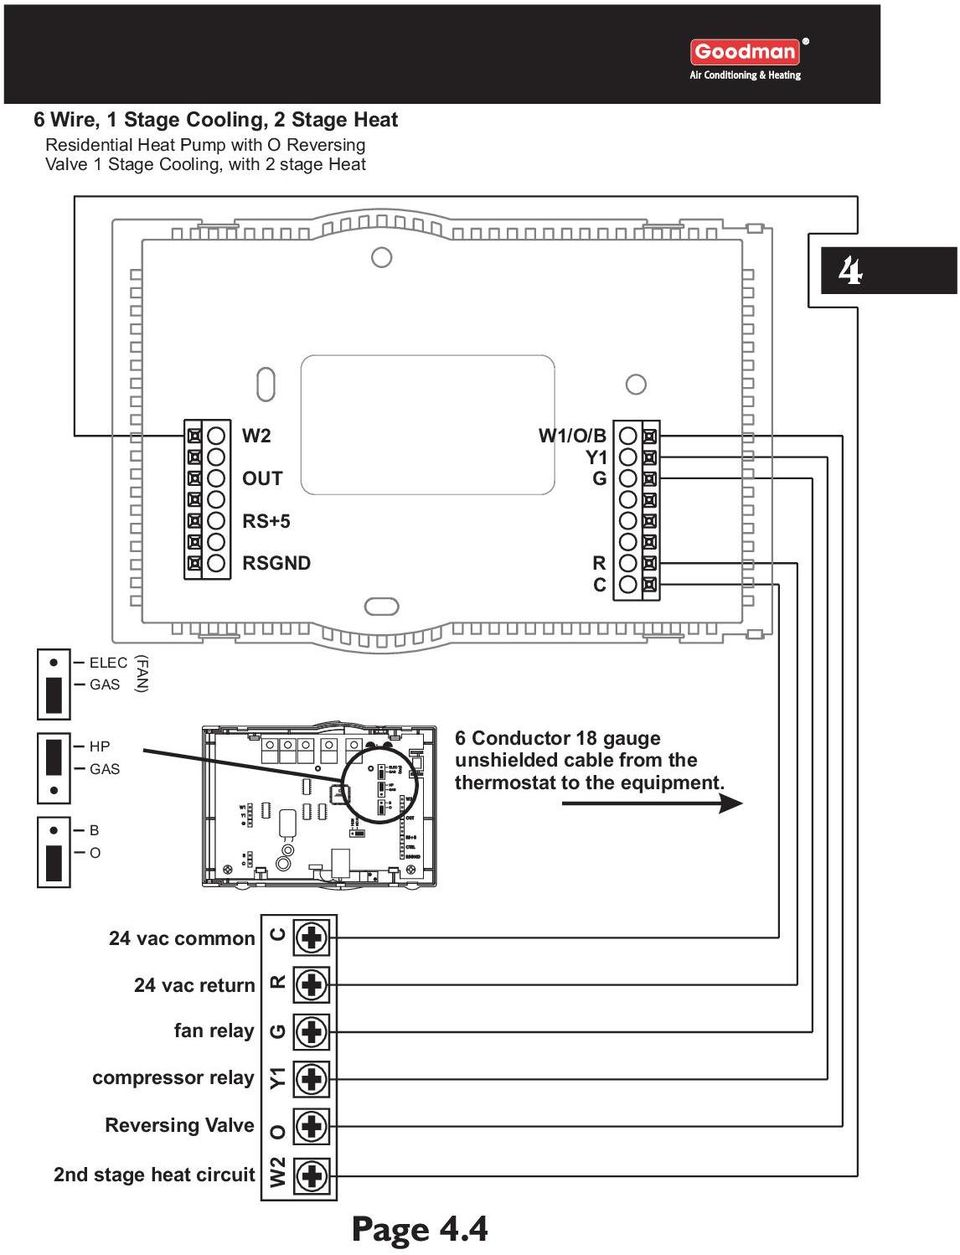 Installation Instructions Pdf 2 Stage Heat Pump Thermostat Wiring Diagram Onductor 18 Gauge Unshielded Cable From The To Equipment